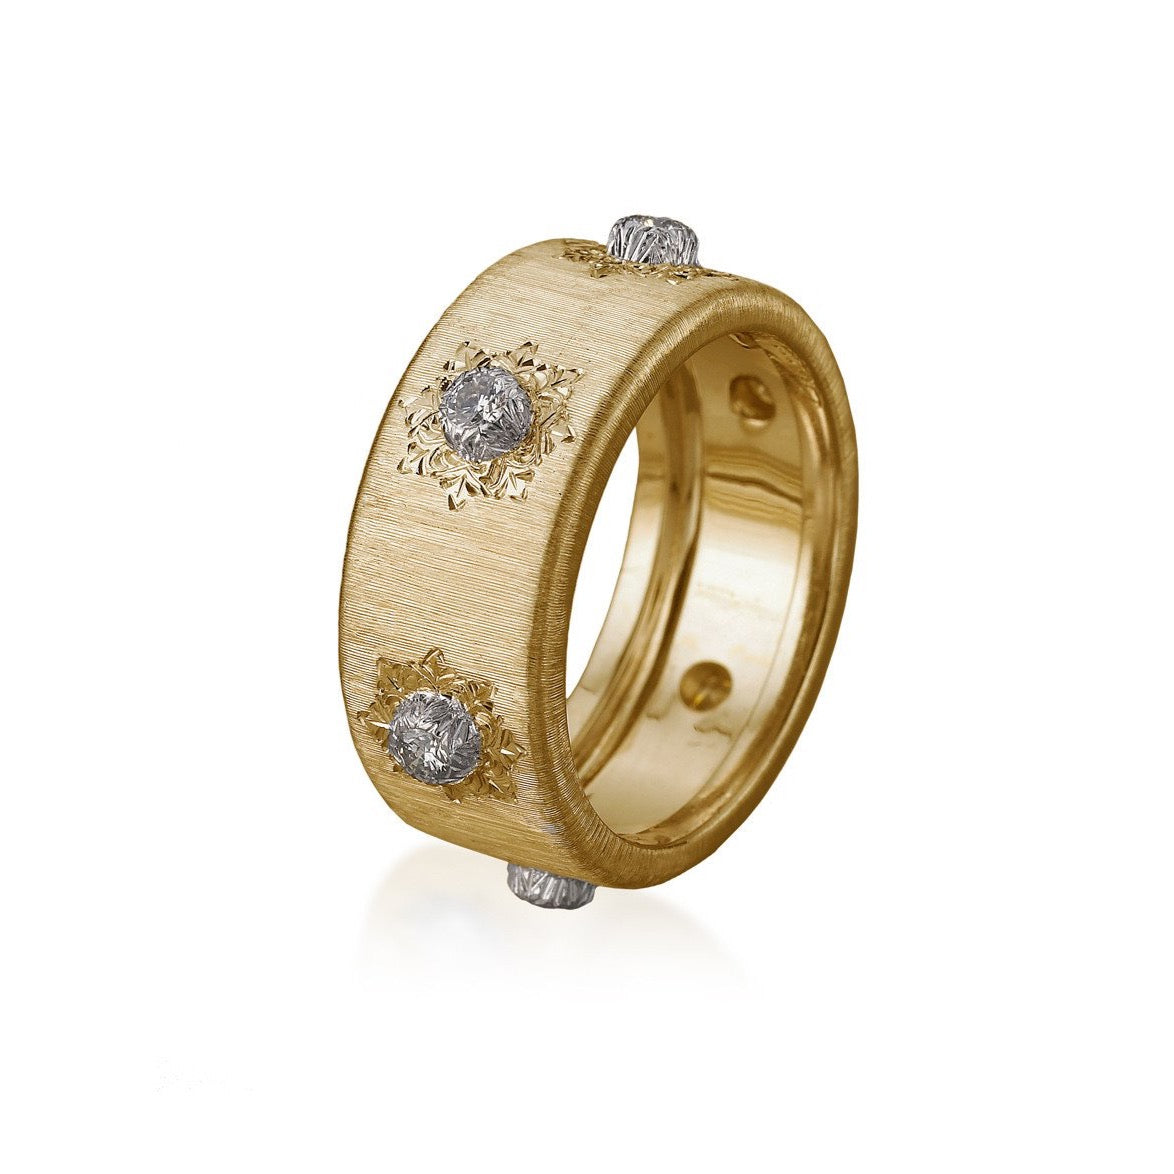 "Buccellati ""Macri Classica"" Eternelle 8.5 mm Band with Diamonds, 18k Yellow Gold."